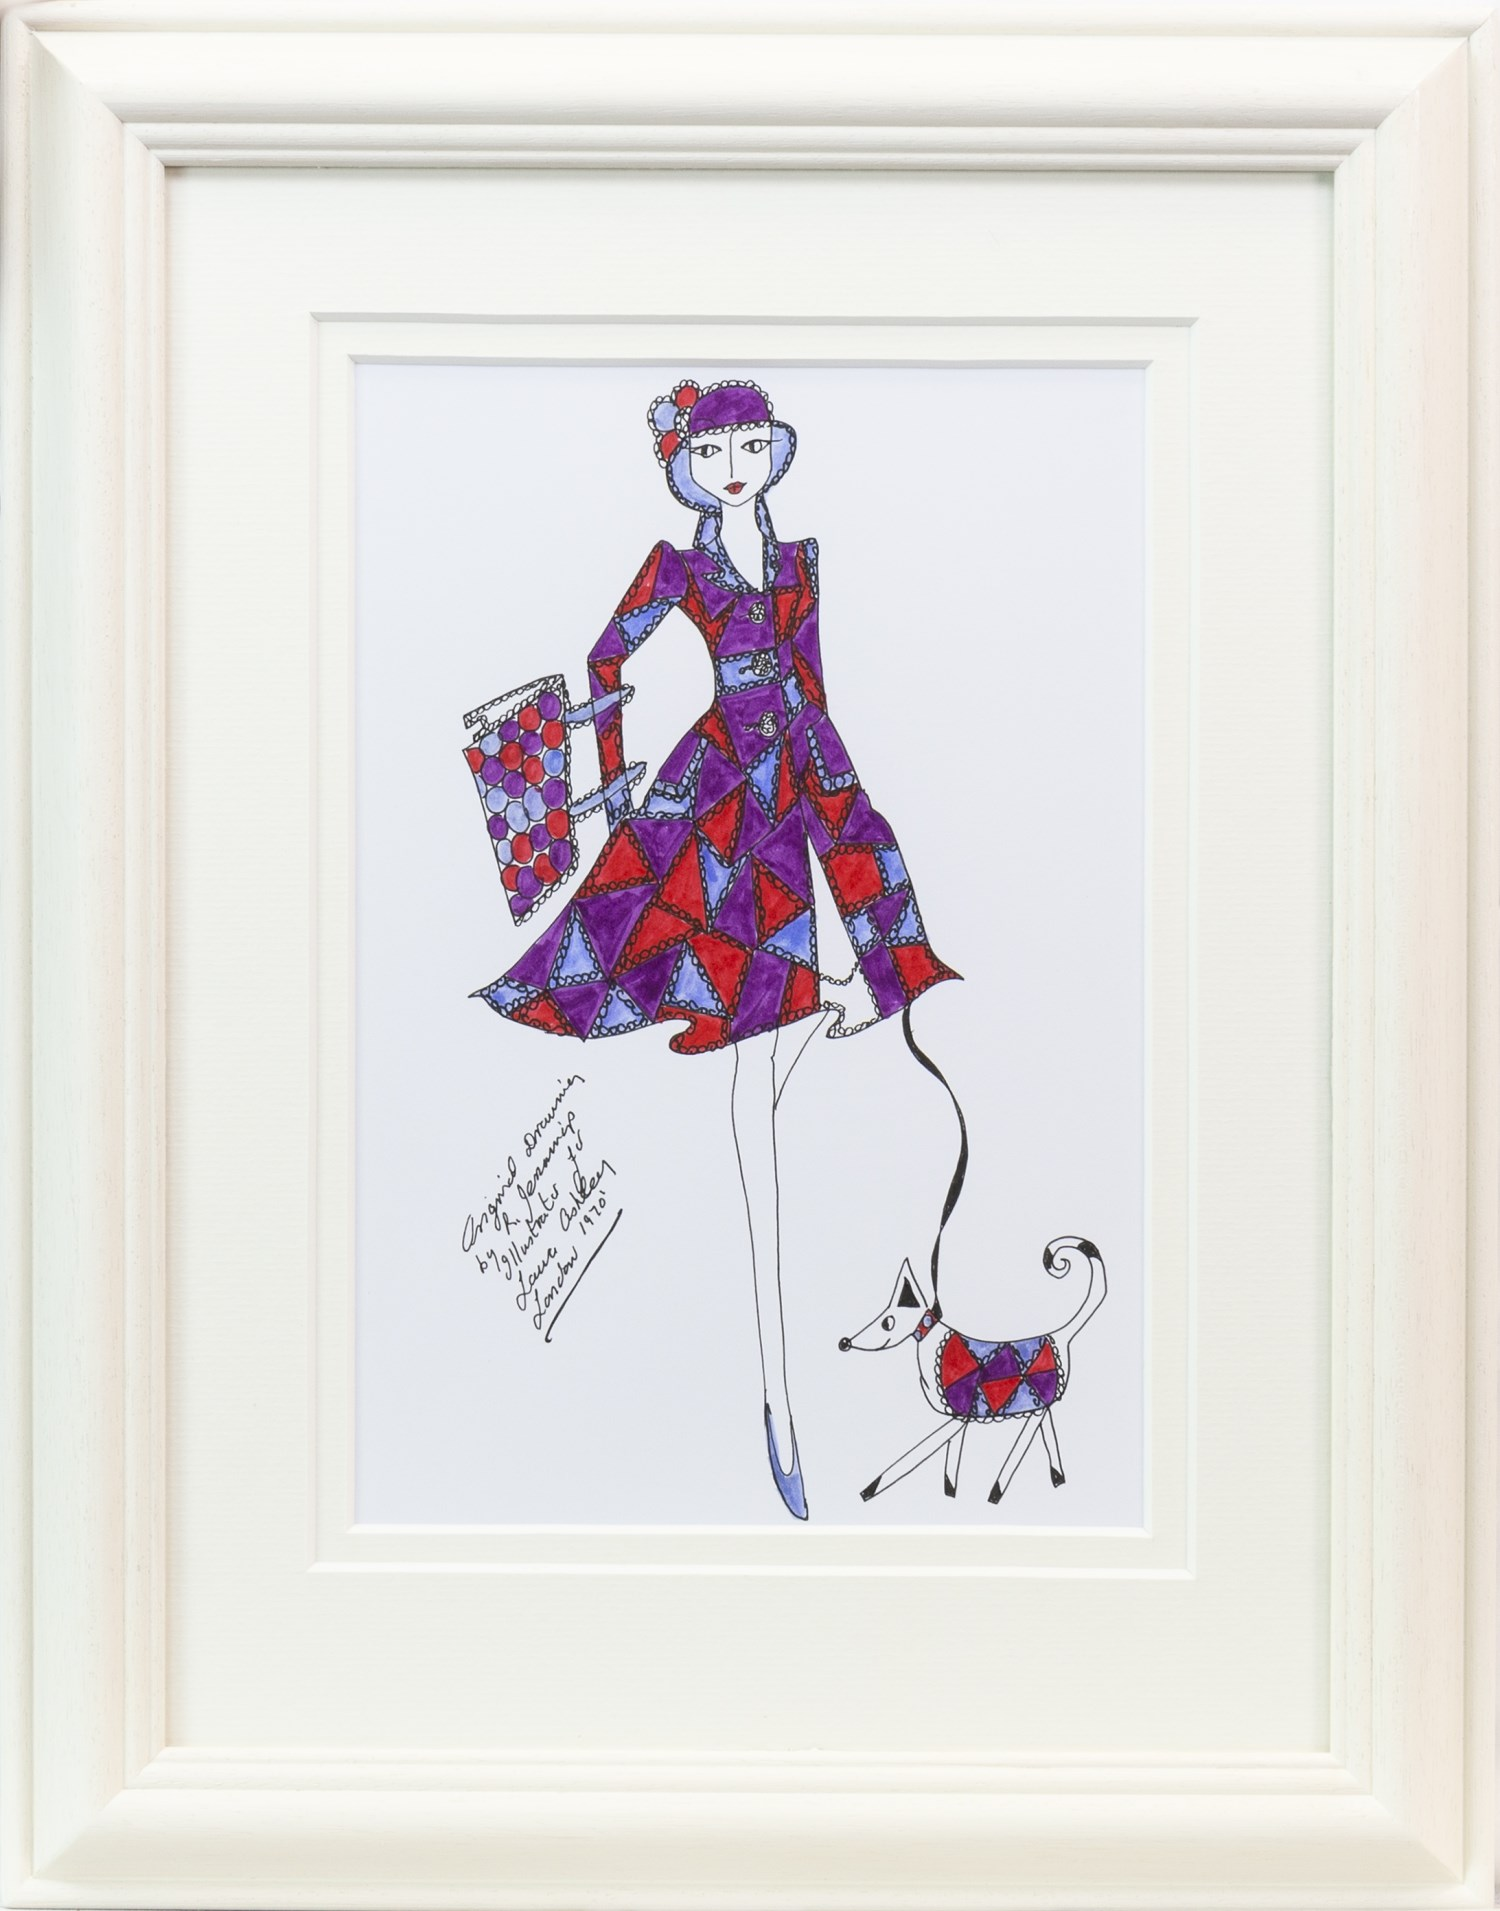 Lot 38 - AN ORIGINAL ILLUSTRATION FOR LAURA ASHLEY, BY ROZ JENNINGS